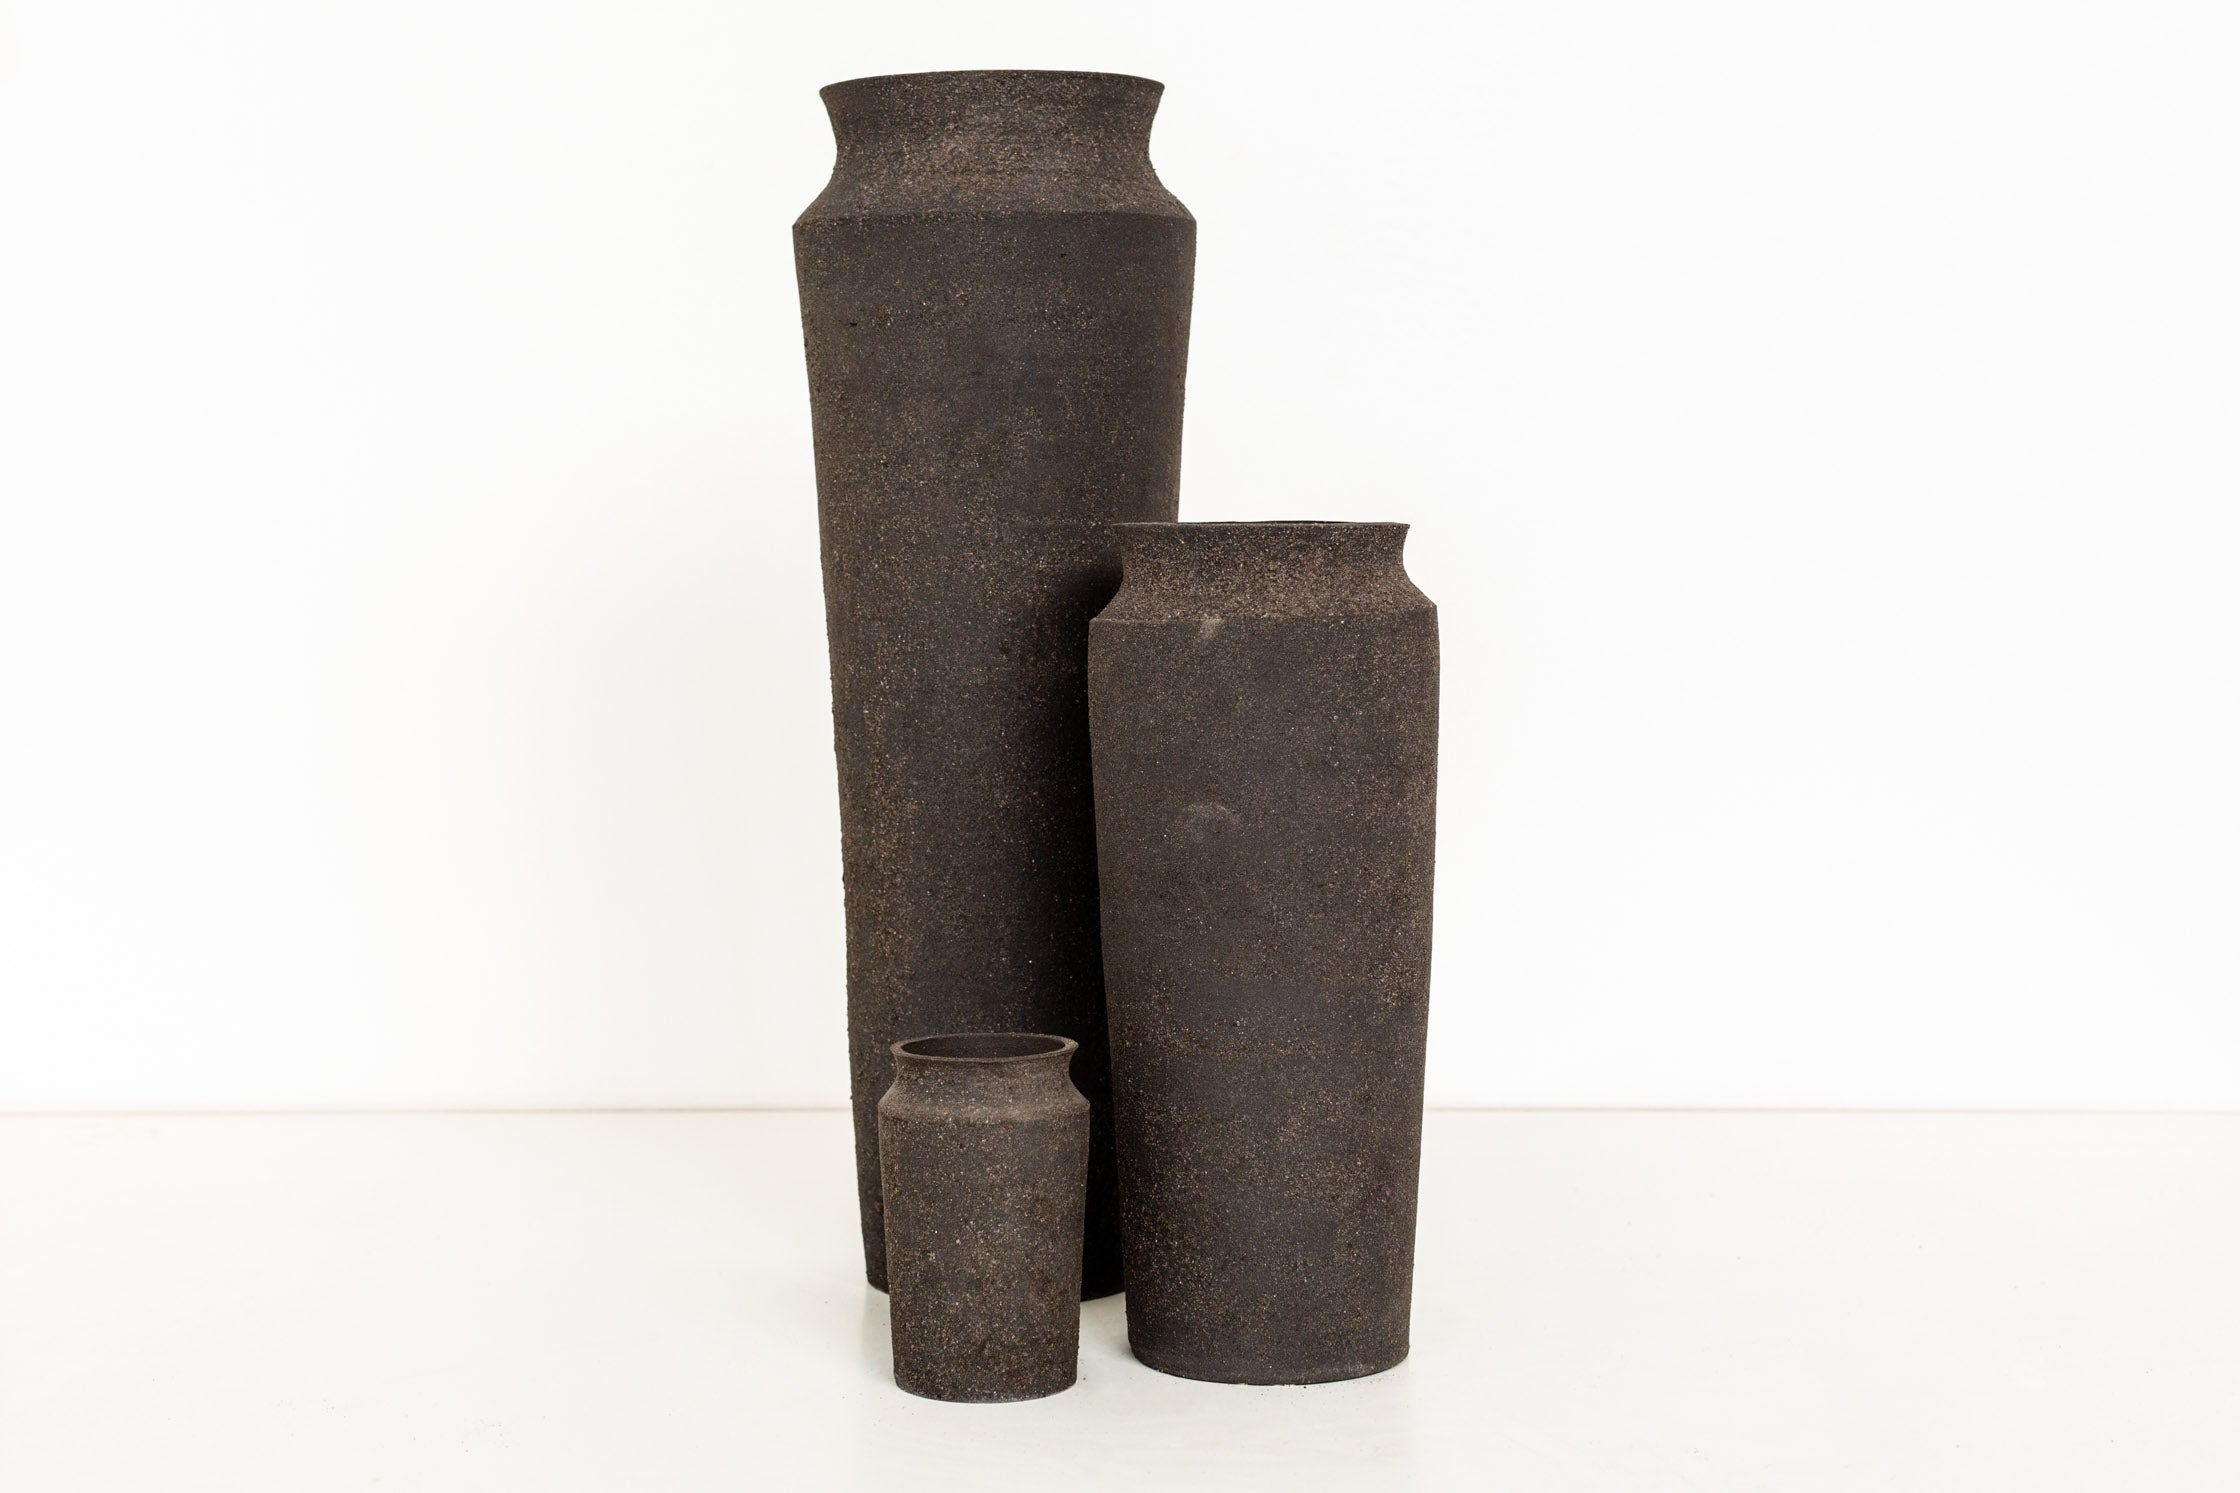 These Vases Are Actually Made From the Liquified Byproducts of Batteries